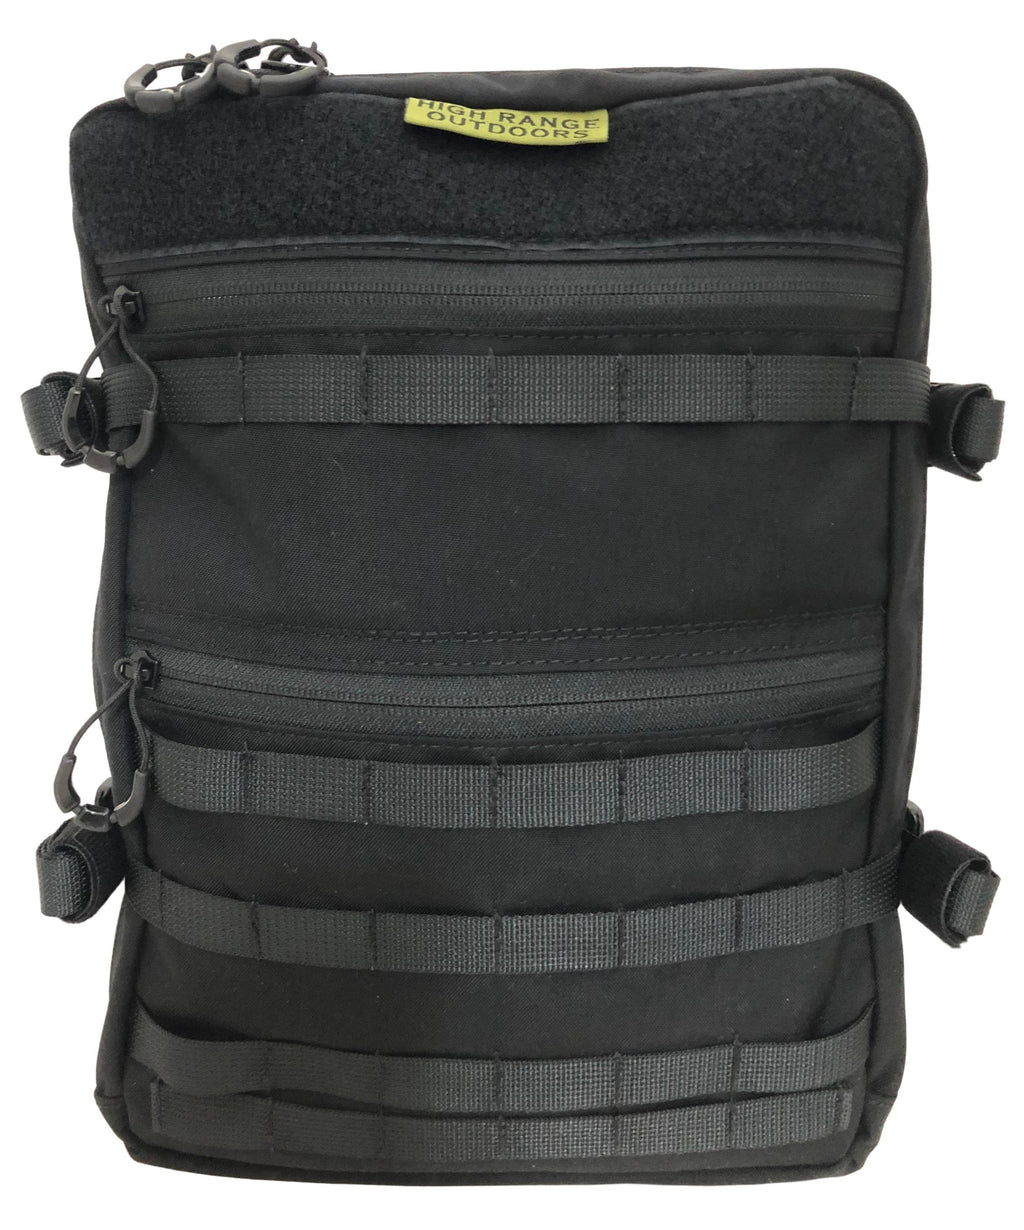 High Range Outdoors Australian Made Bolt 12 12L EDC Day pack front view with molle velcro and compression straps for hunting